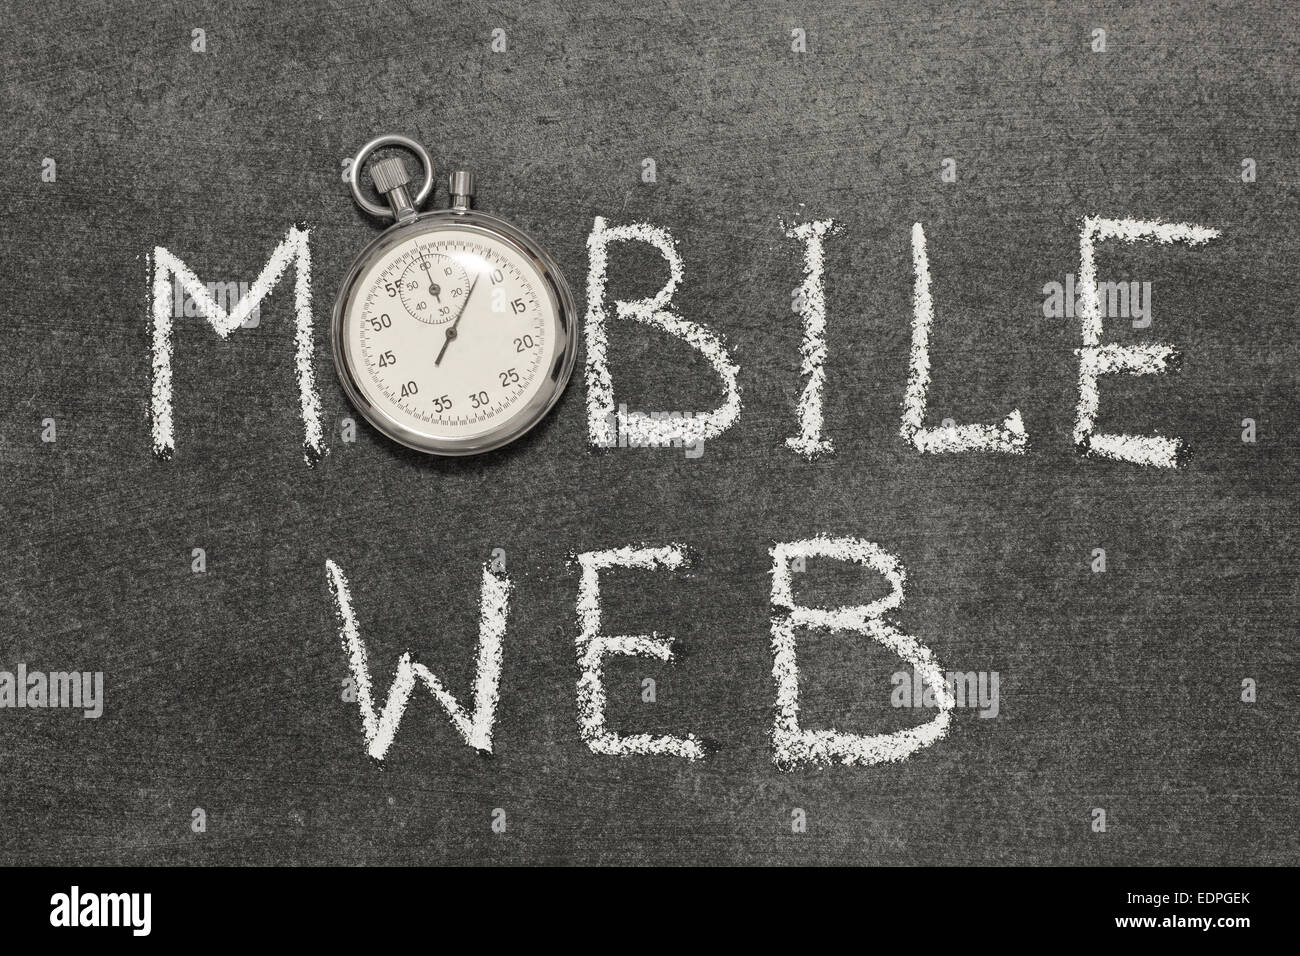 mobile web phrase handwritten on chalkboard with vintage precise stopwatch used instead of O - Stock Image